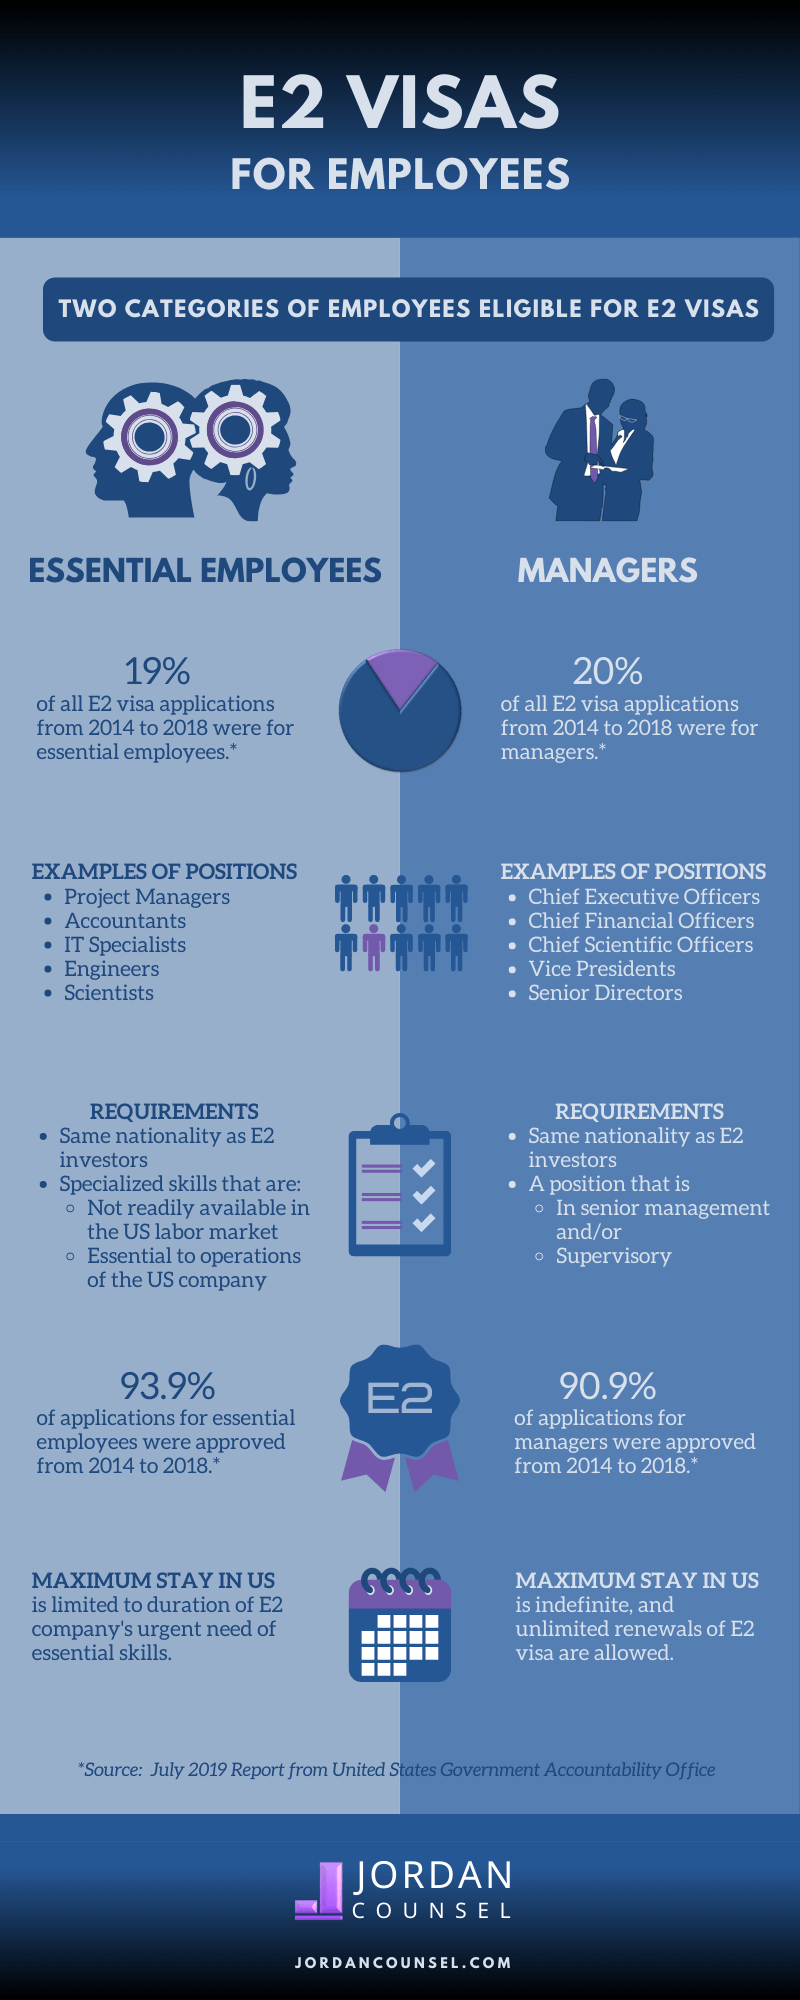 E2 visas for employees infographic